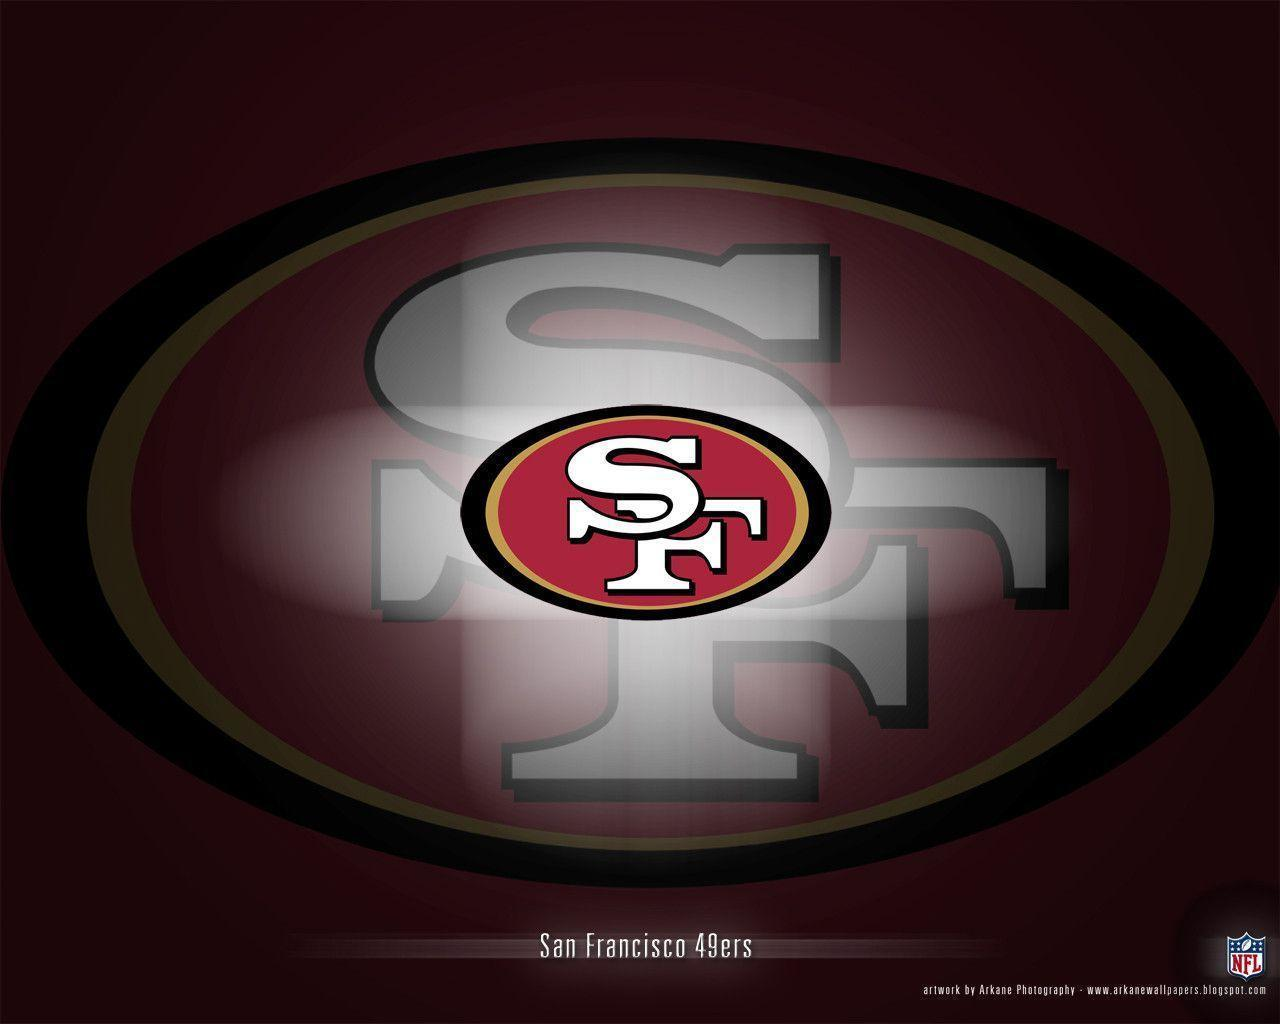 Free 49ers wallpapers your phone wallpaper cave san francisco 49ers wallpapers san francisco 49ers background voltagebd Images